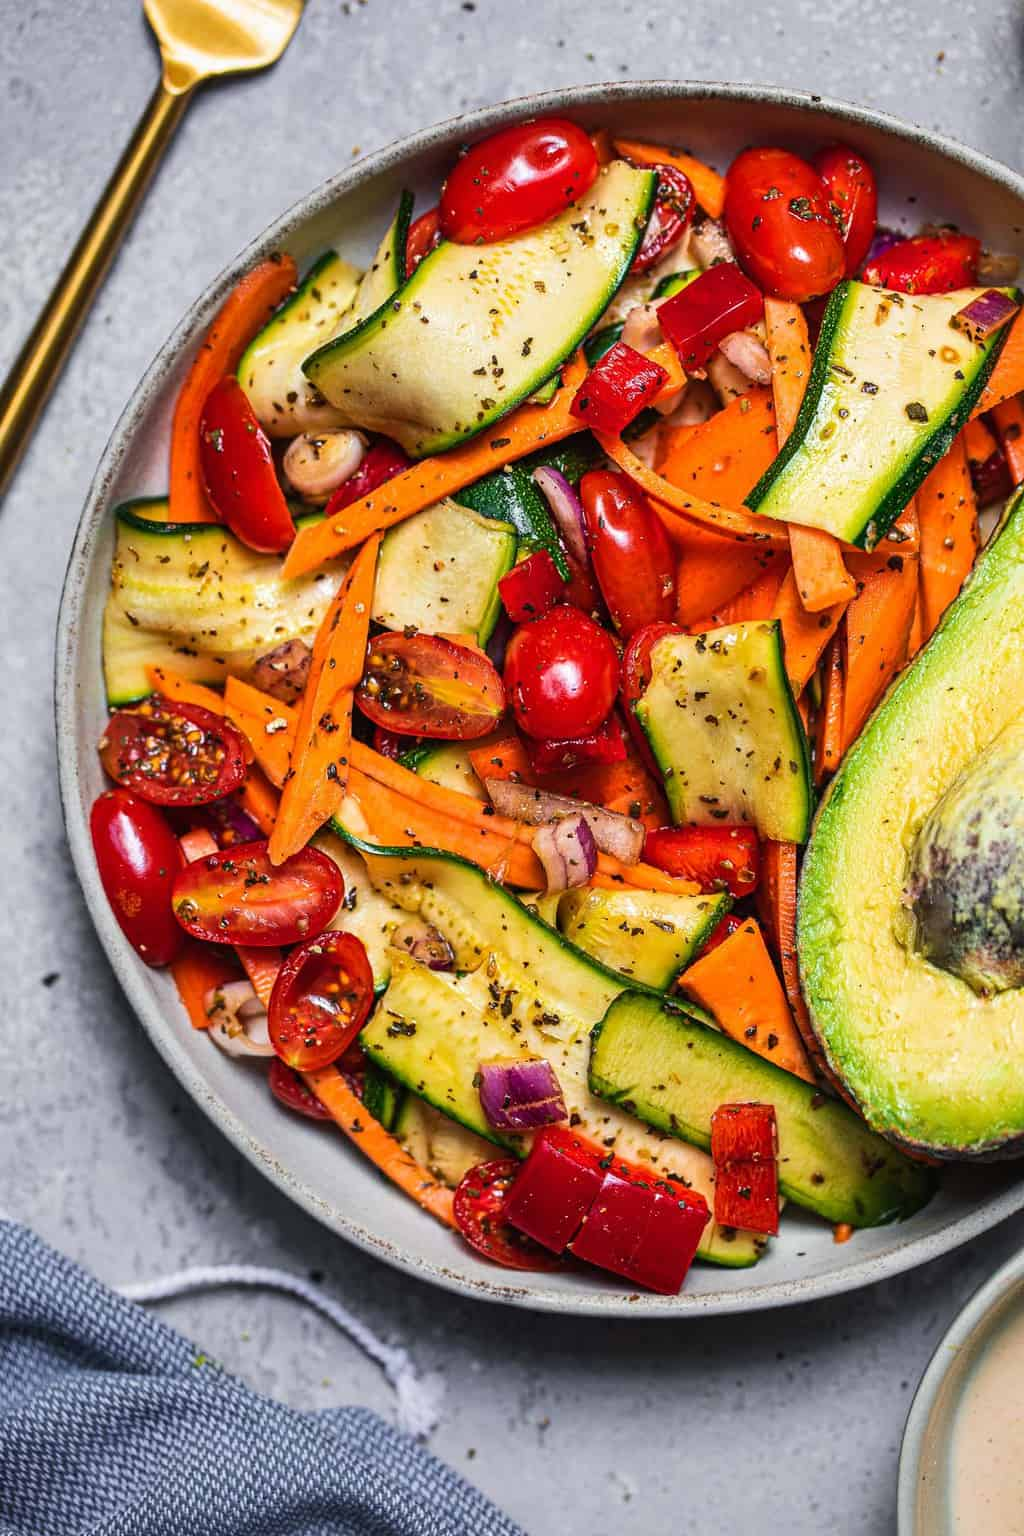 Salad with zucchini sweet potato and tomatoes